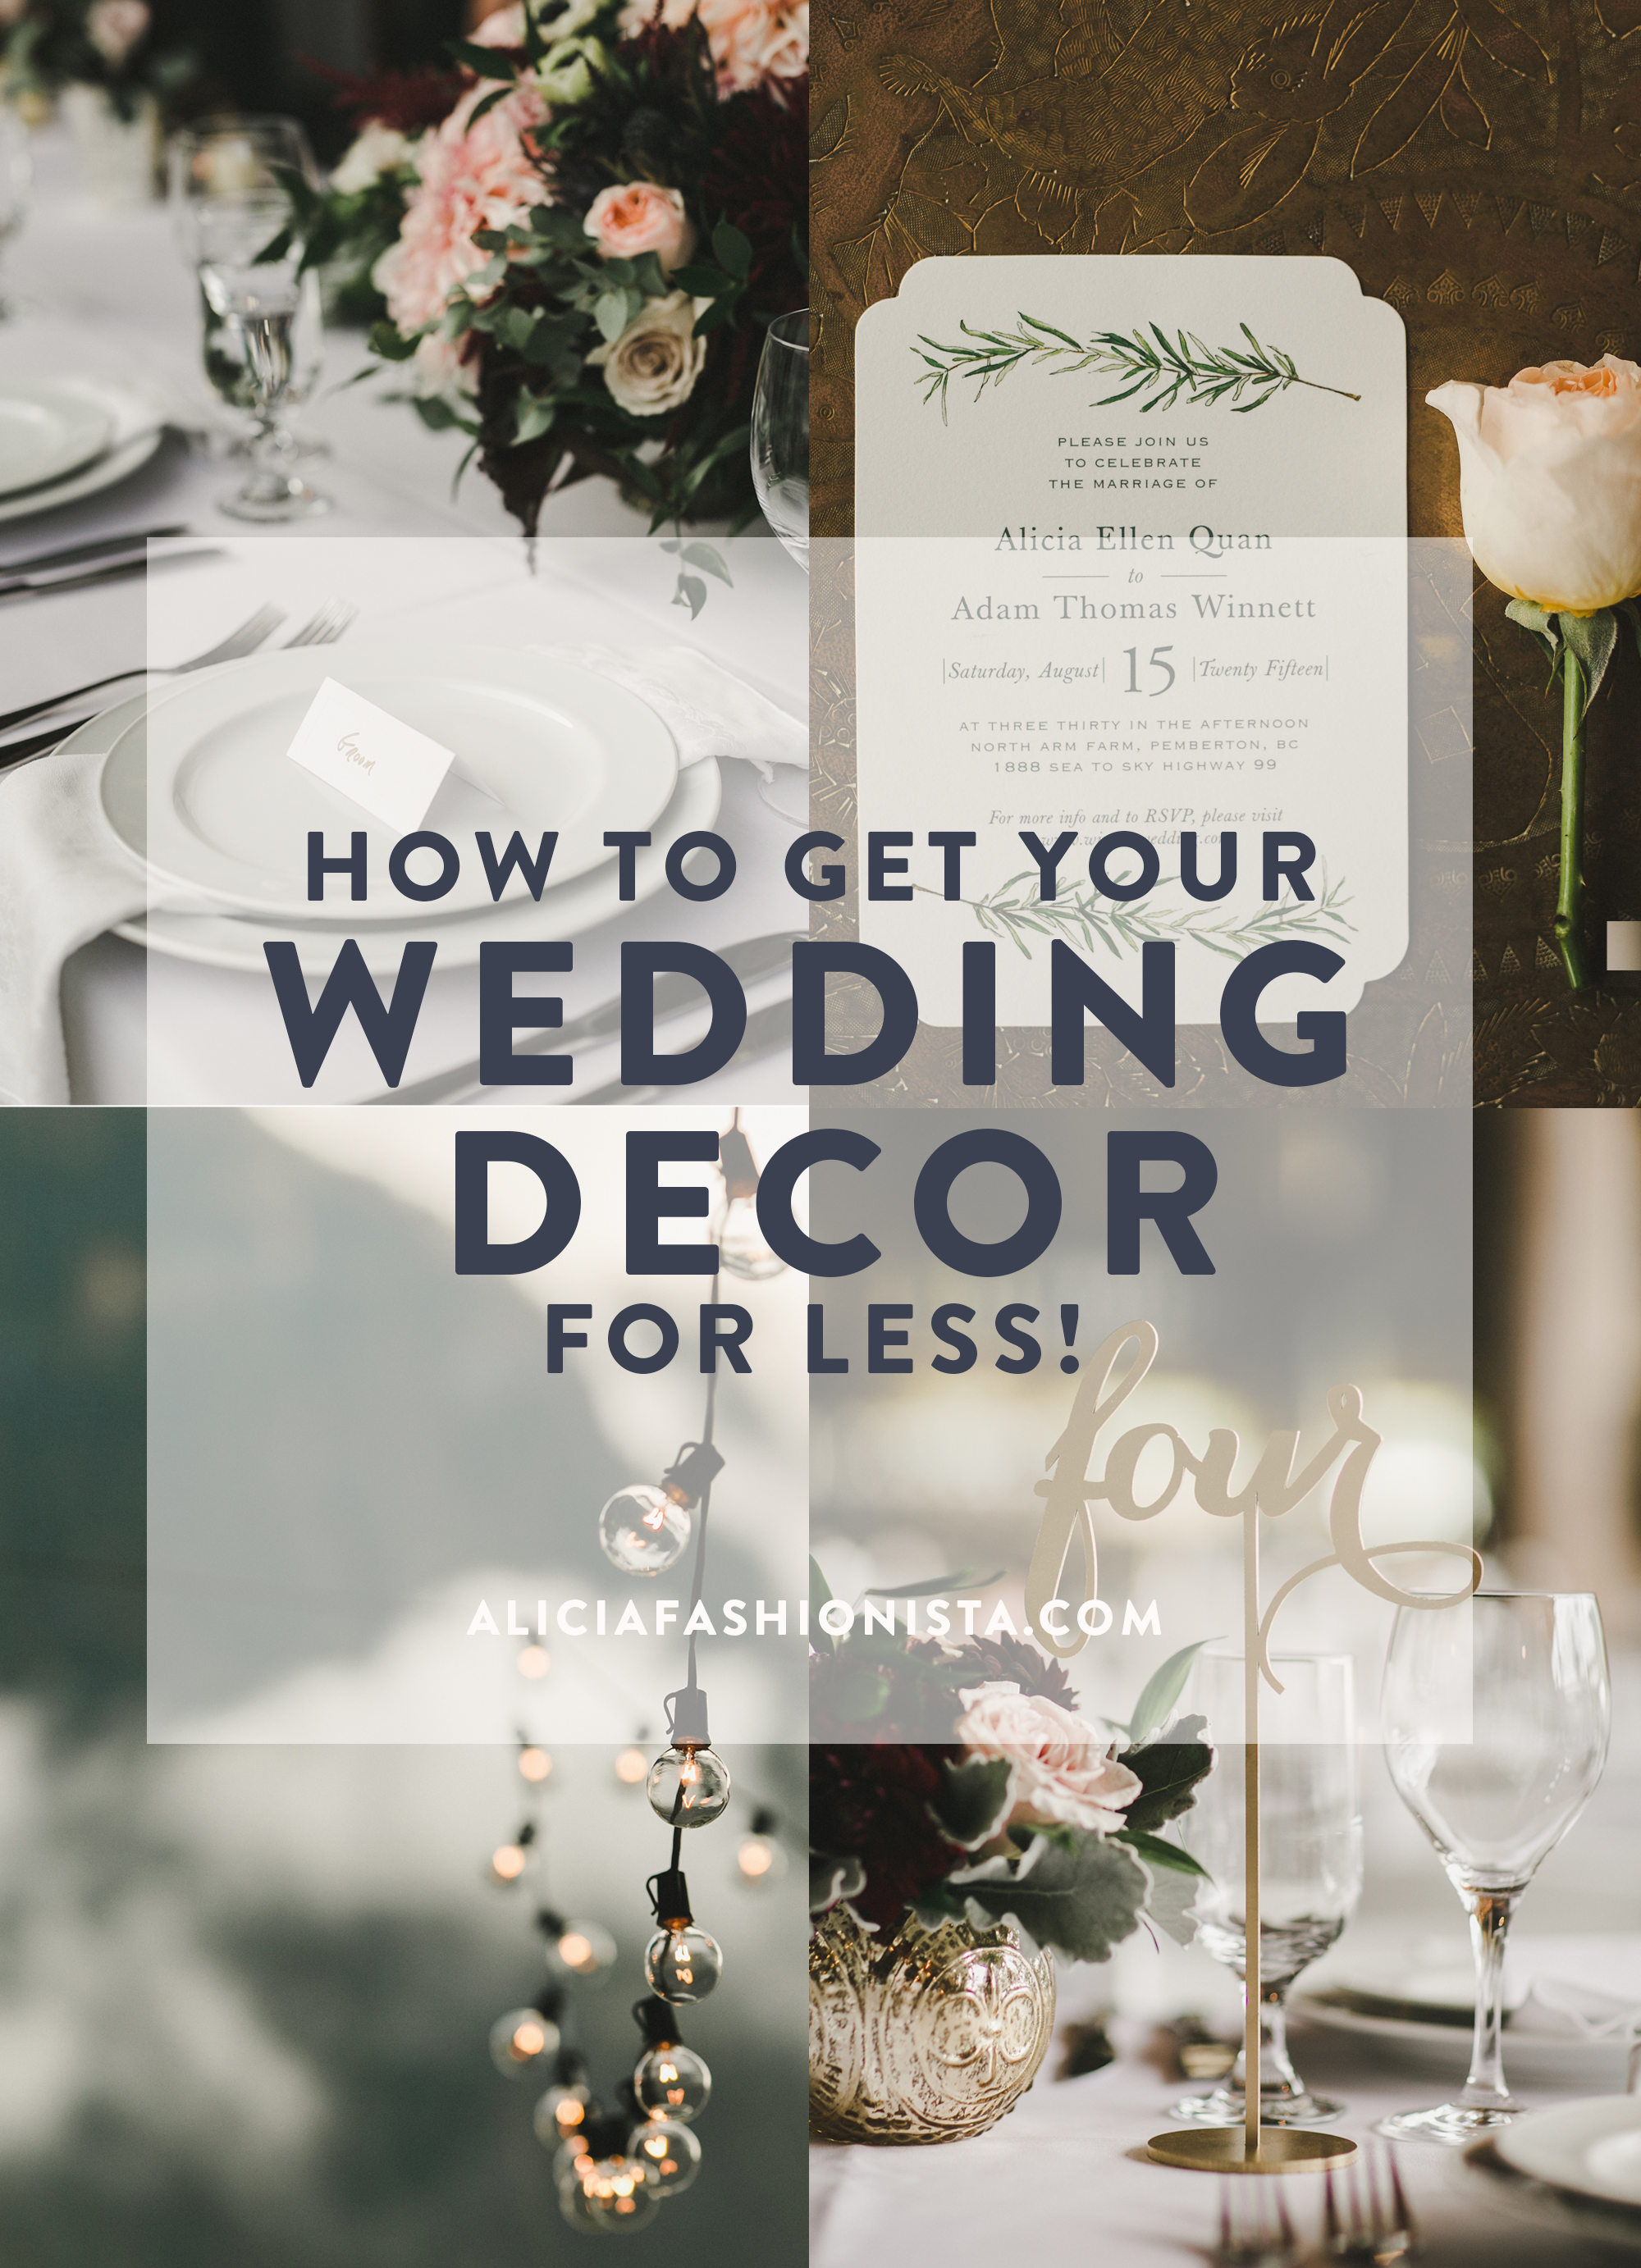 Amazing Rustic Wedding Ideas On A Budget – Wedding